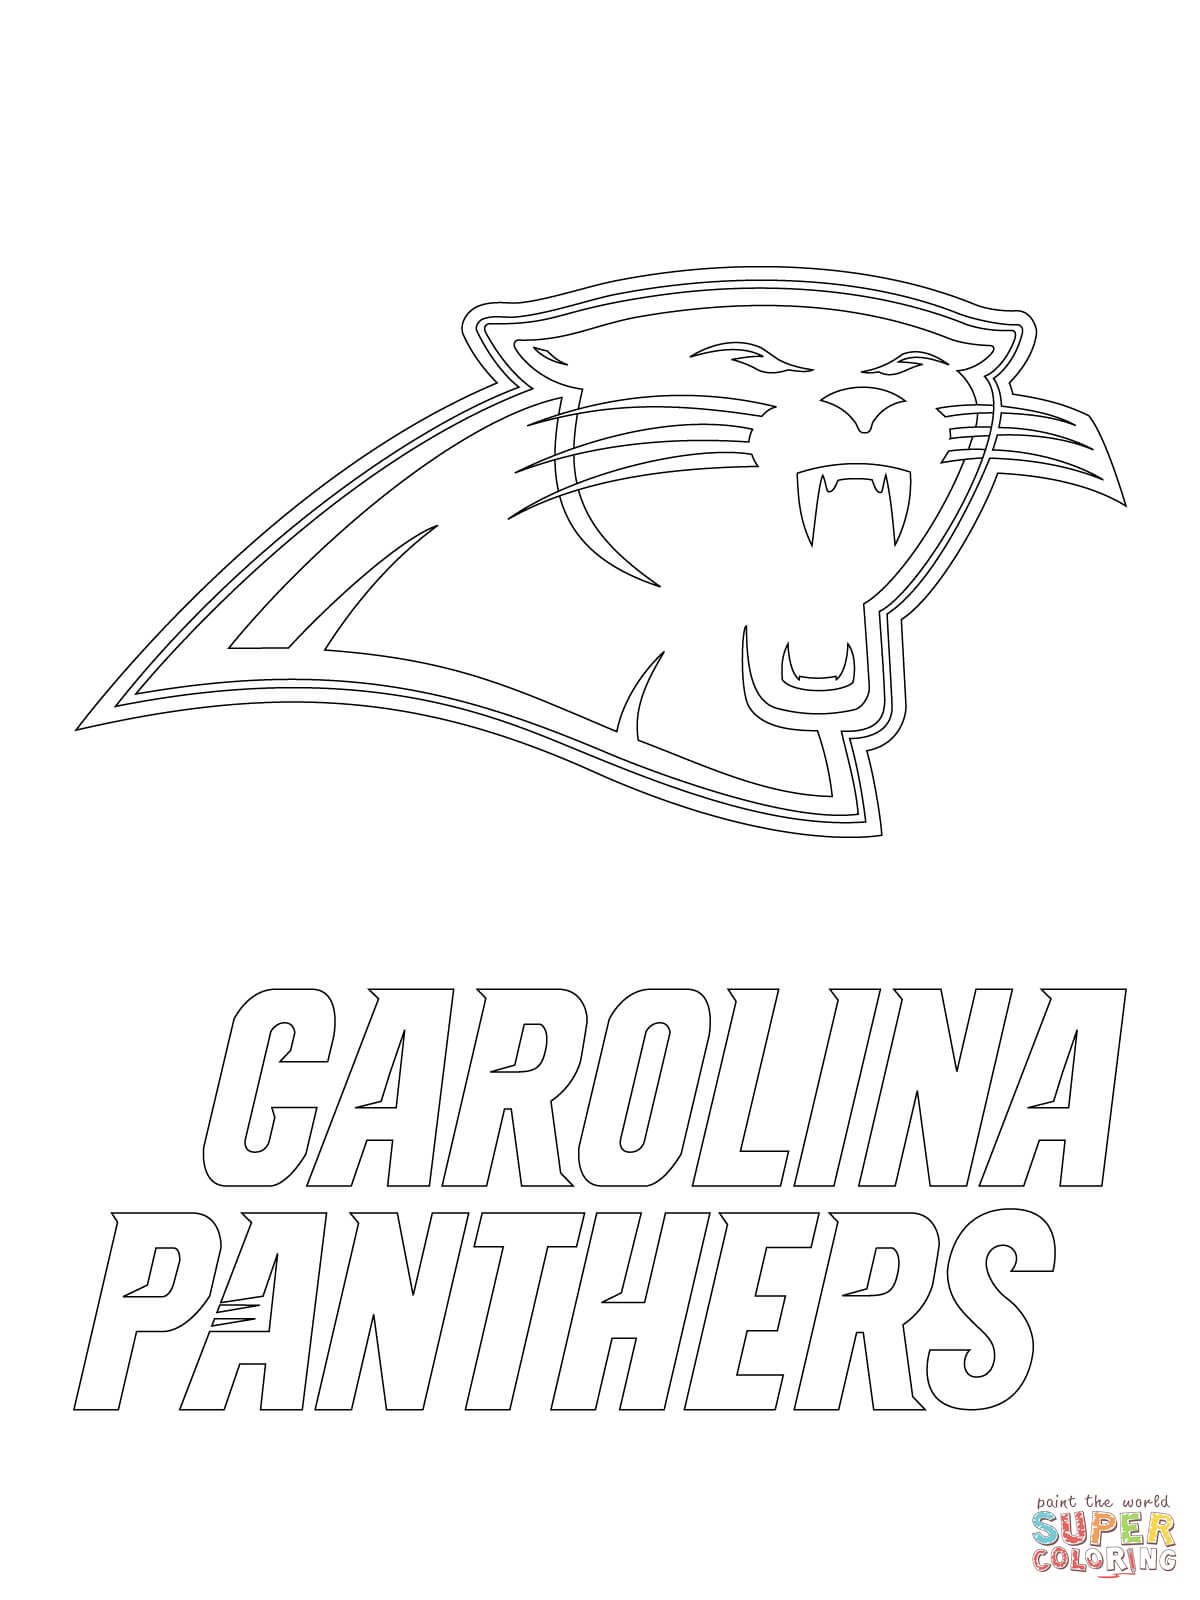 Carolina Panthers Logo coloring page | Free Printable Coloring Pages